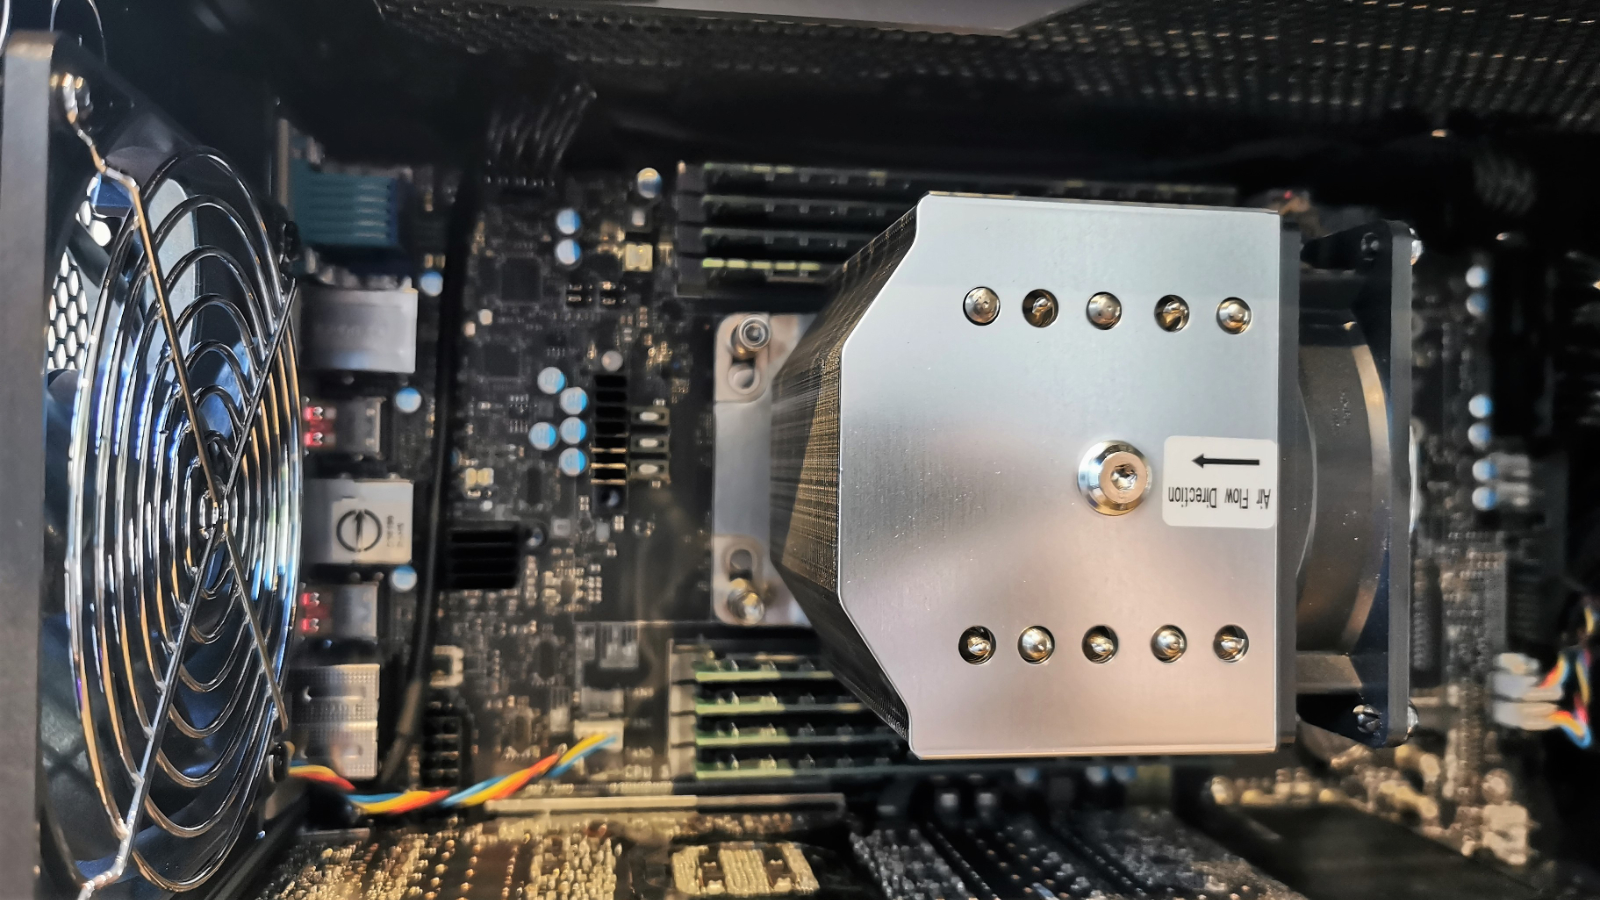 Supermicro AS-5014A-TT Workstation by Boston Labs